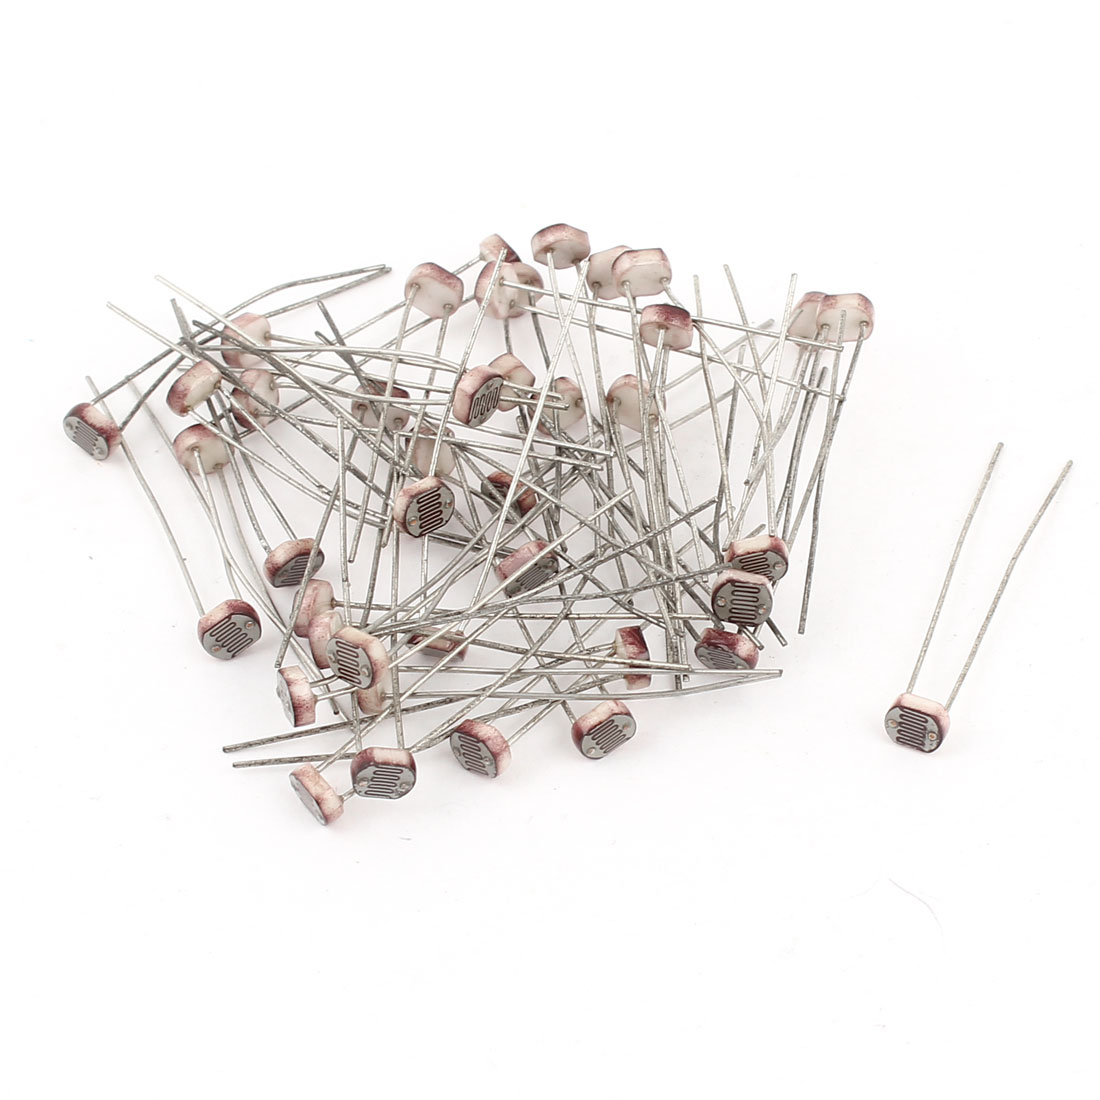 40 Pieces Photoresistor GL5516 LDR Photo Resistors Light Dependant Resistor 5mm